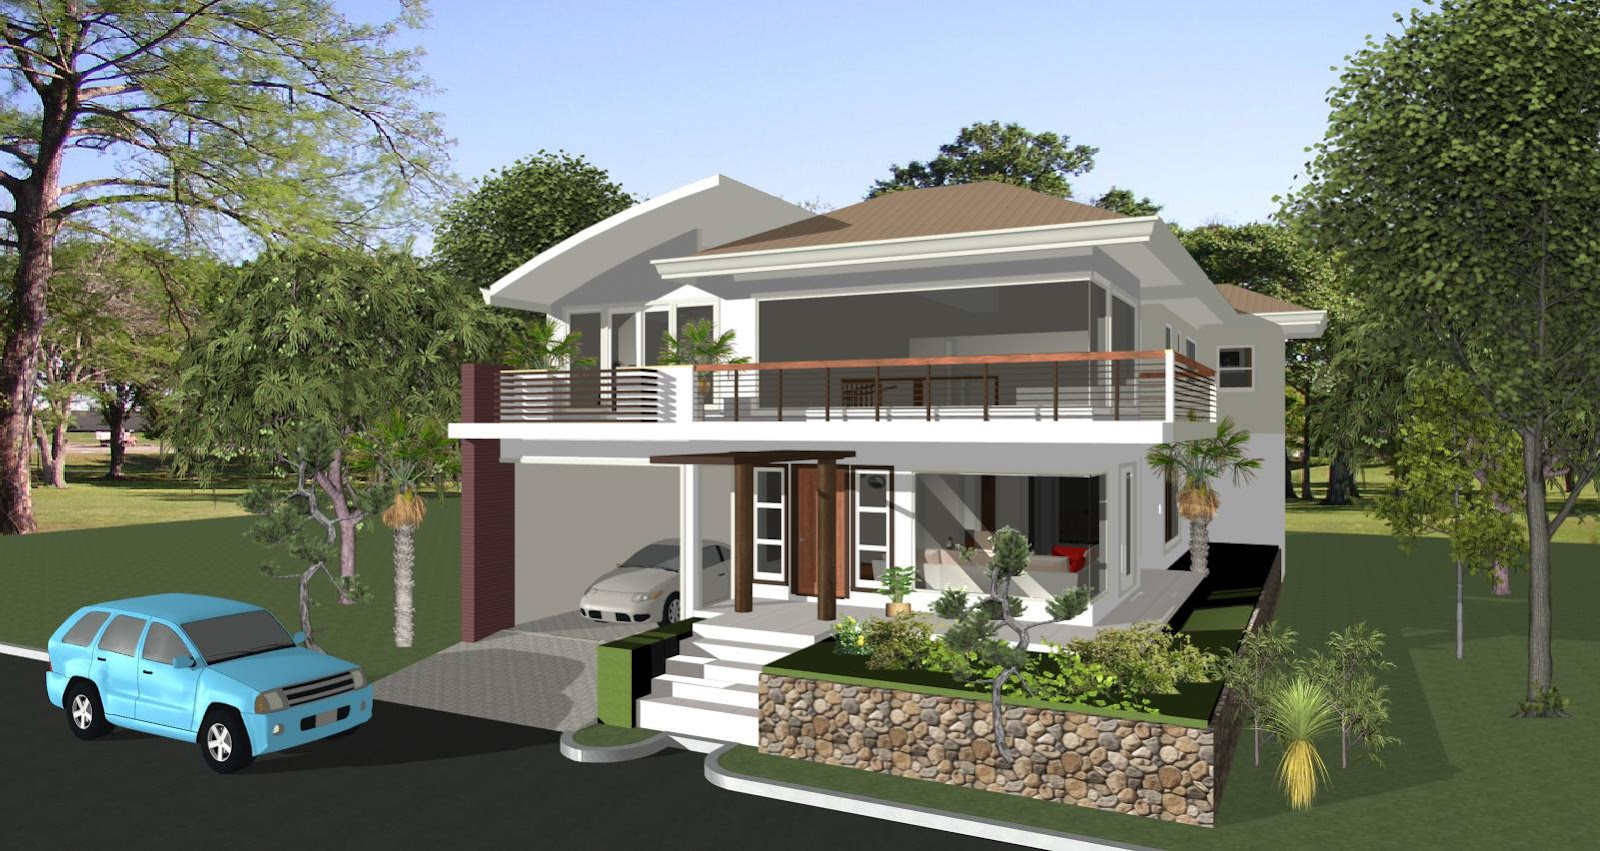 House designs philippines architect bill house plans for Best indian architectural affordable home designs